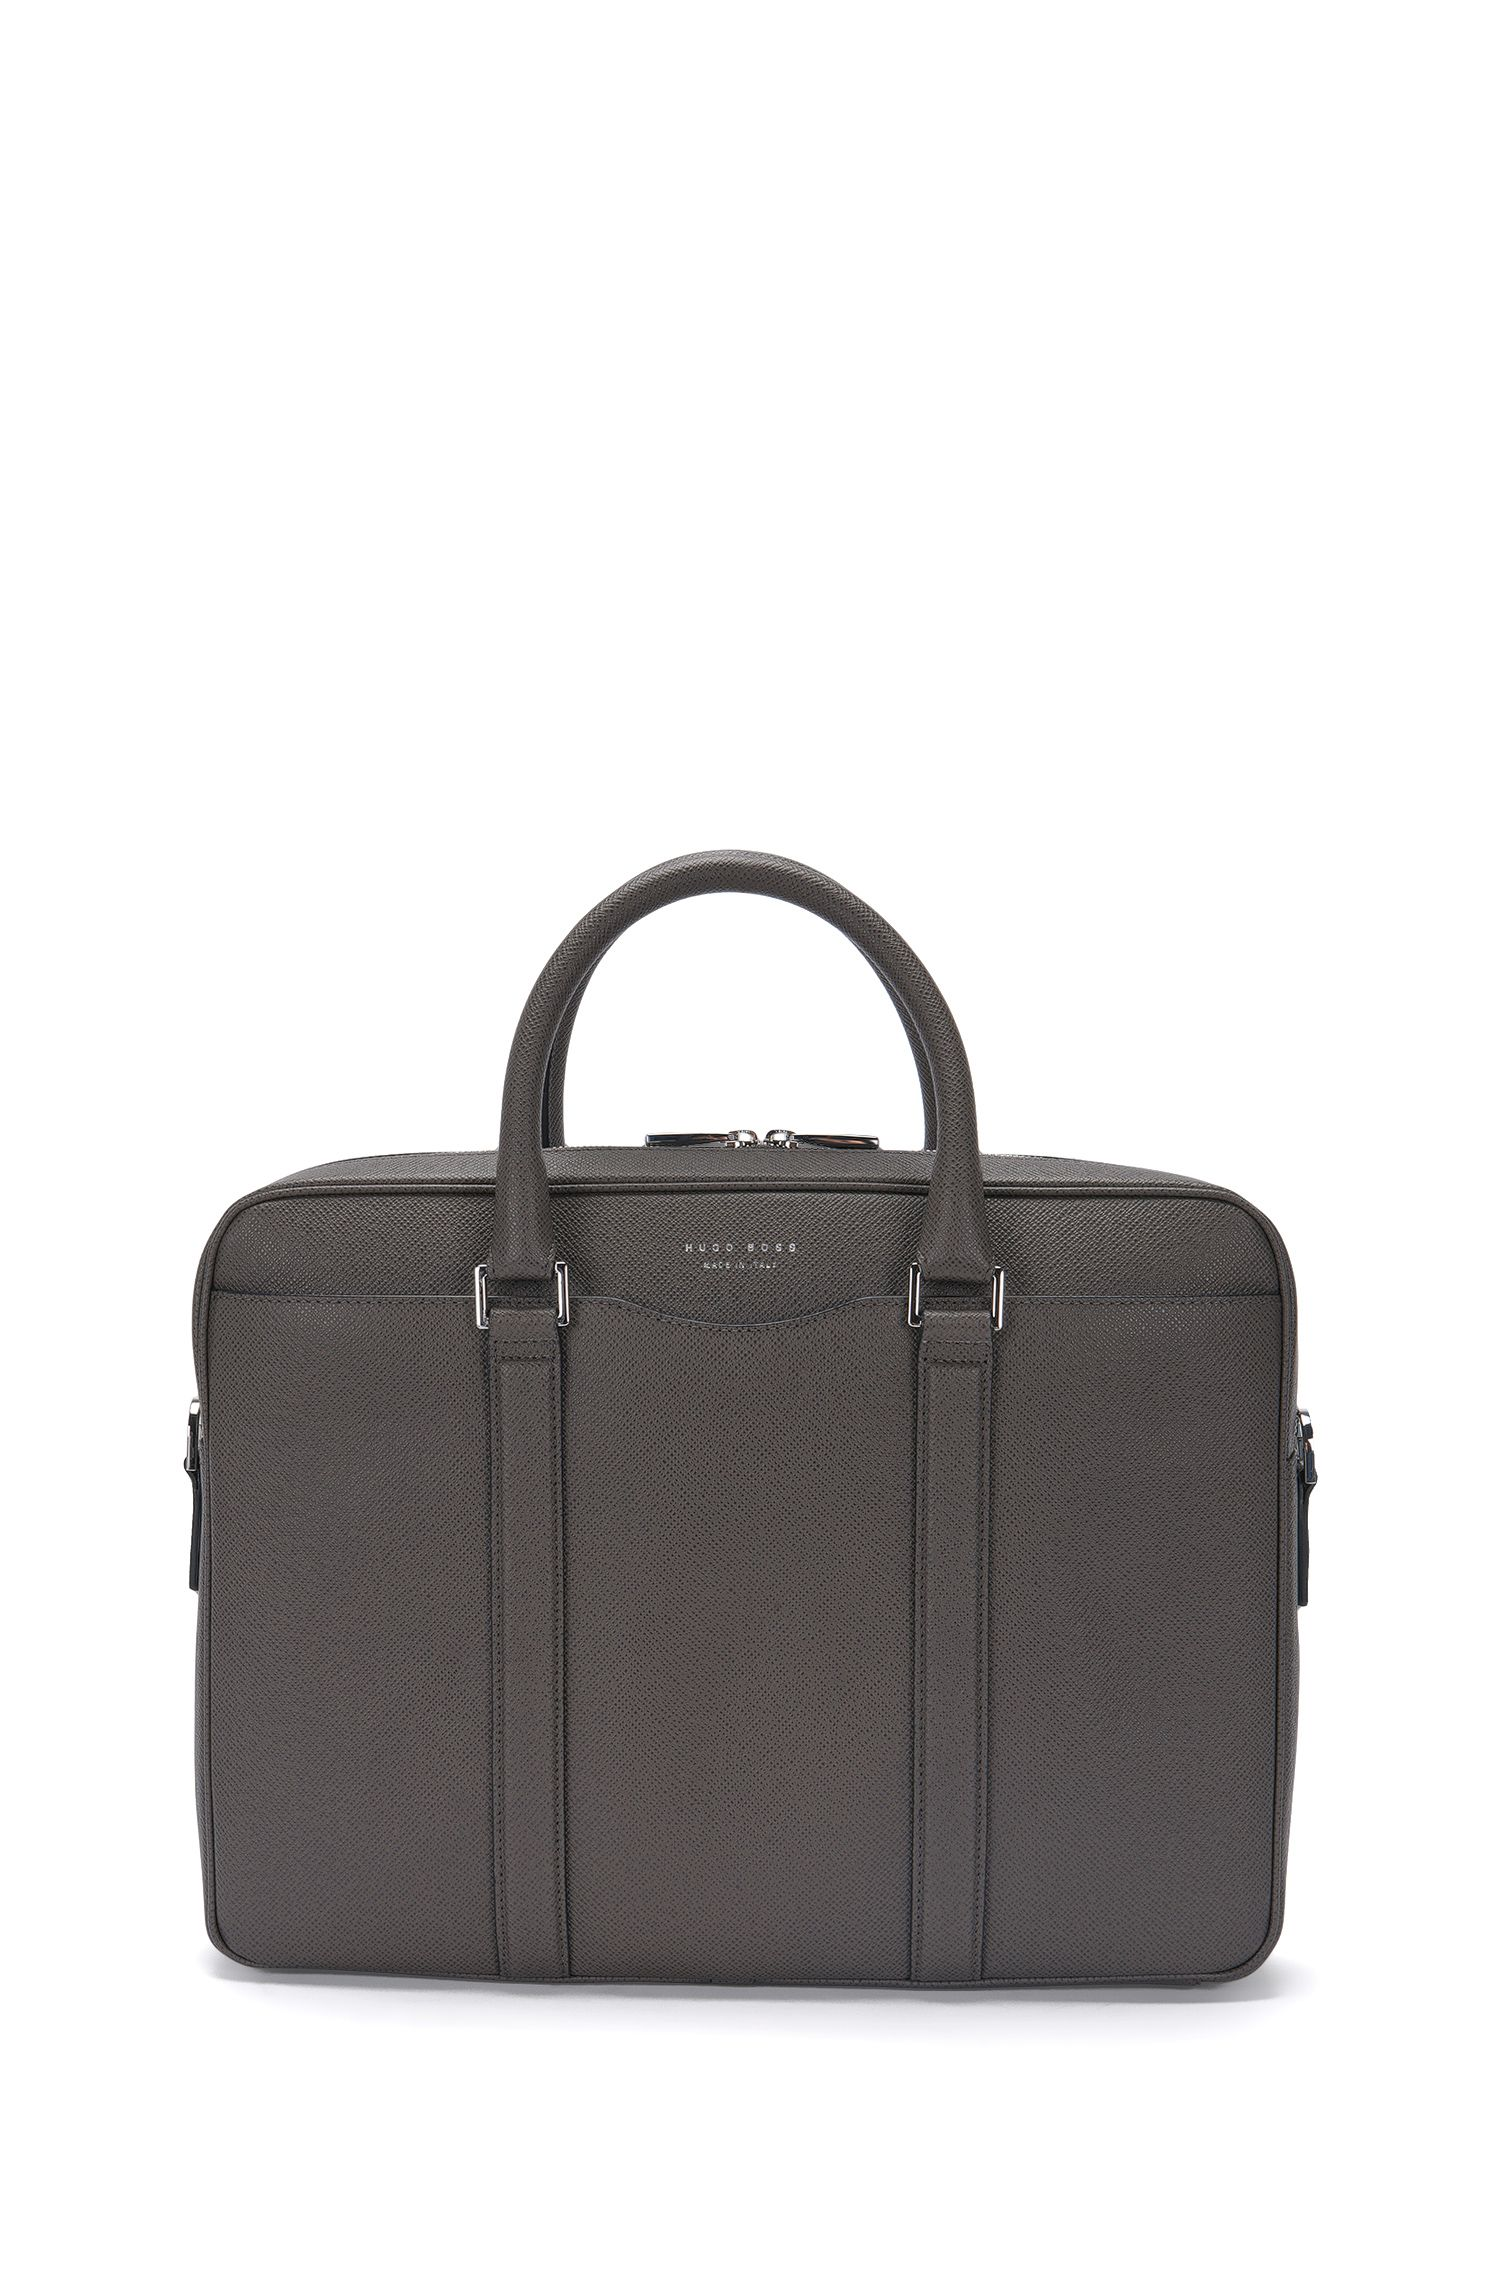 Tas van palmellatoleer uit de Signature Collection van BOSS